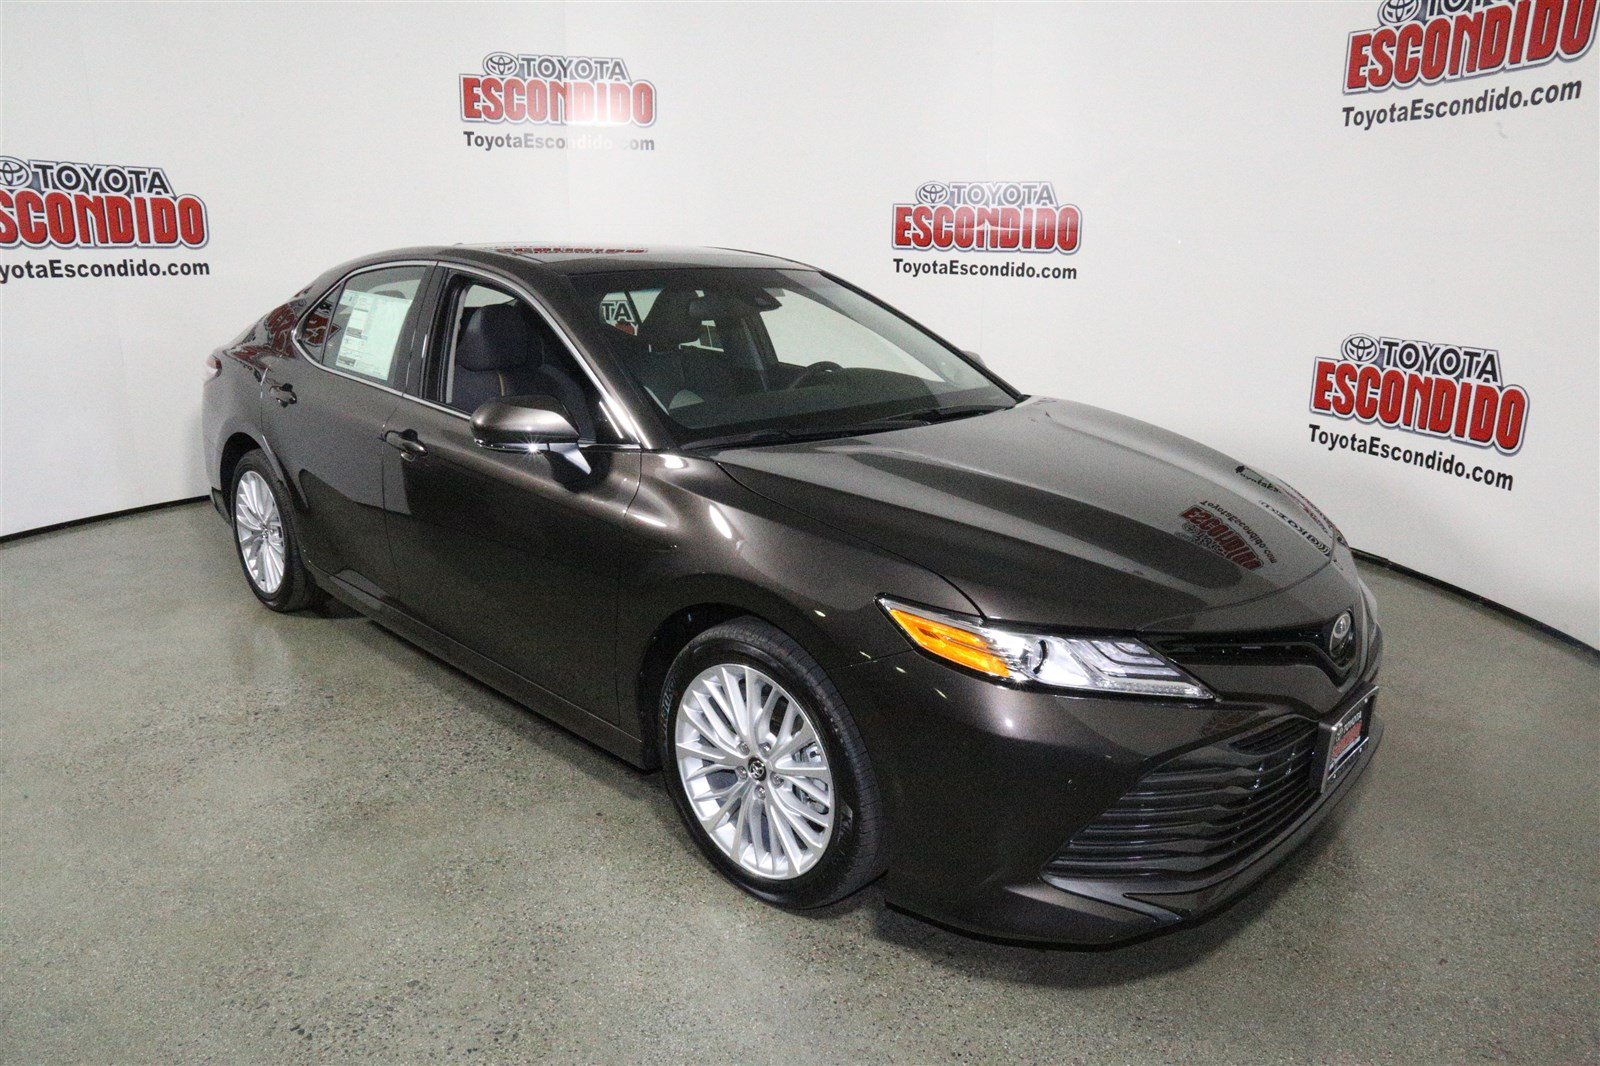 New 2018 Toyota Camry Xle V6 4dr Car In Escondido 1015242